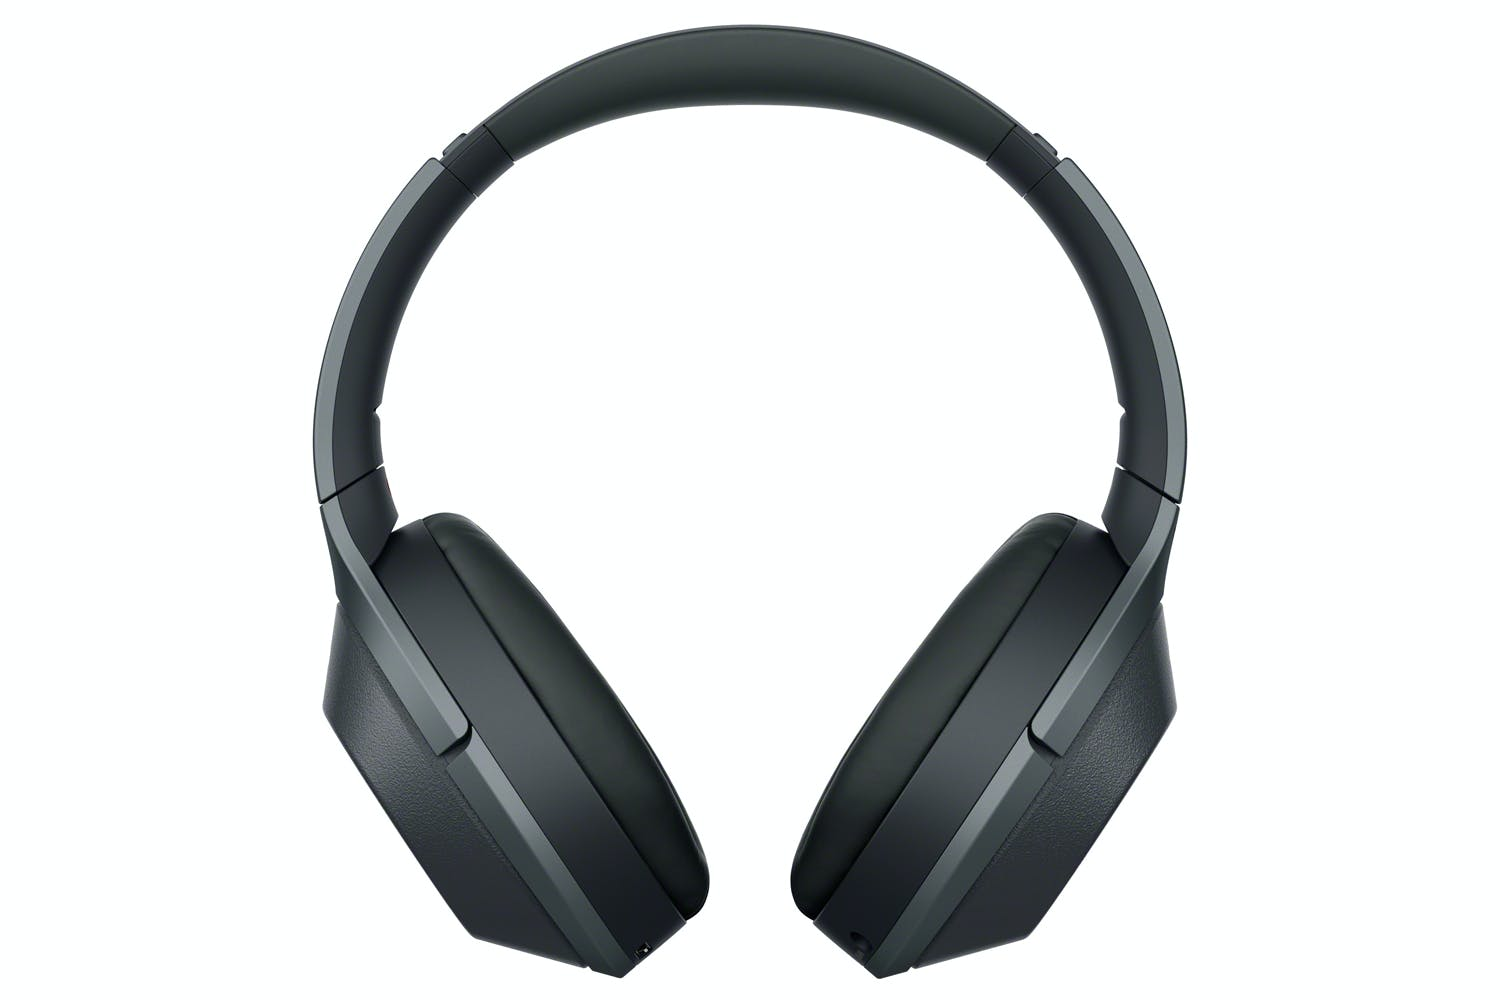 Building Noise Canceling Headphones Sony Wh 1000xm2 Wireless Cancelling Ireland